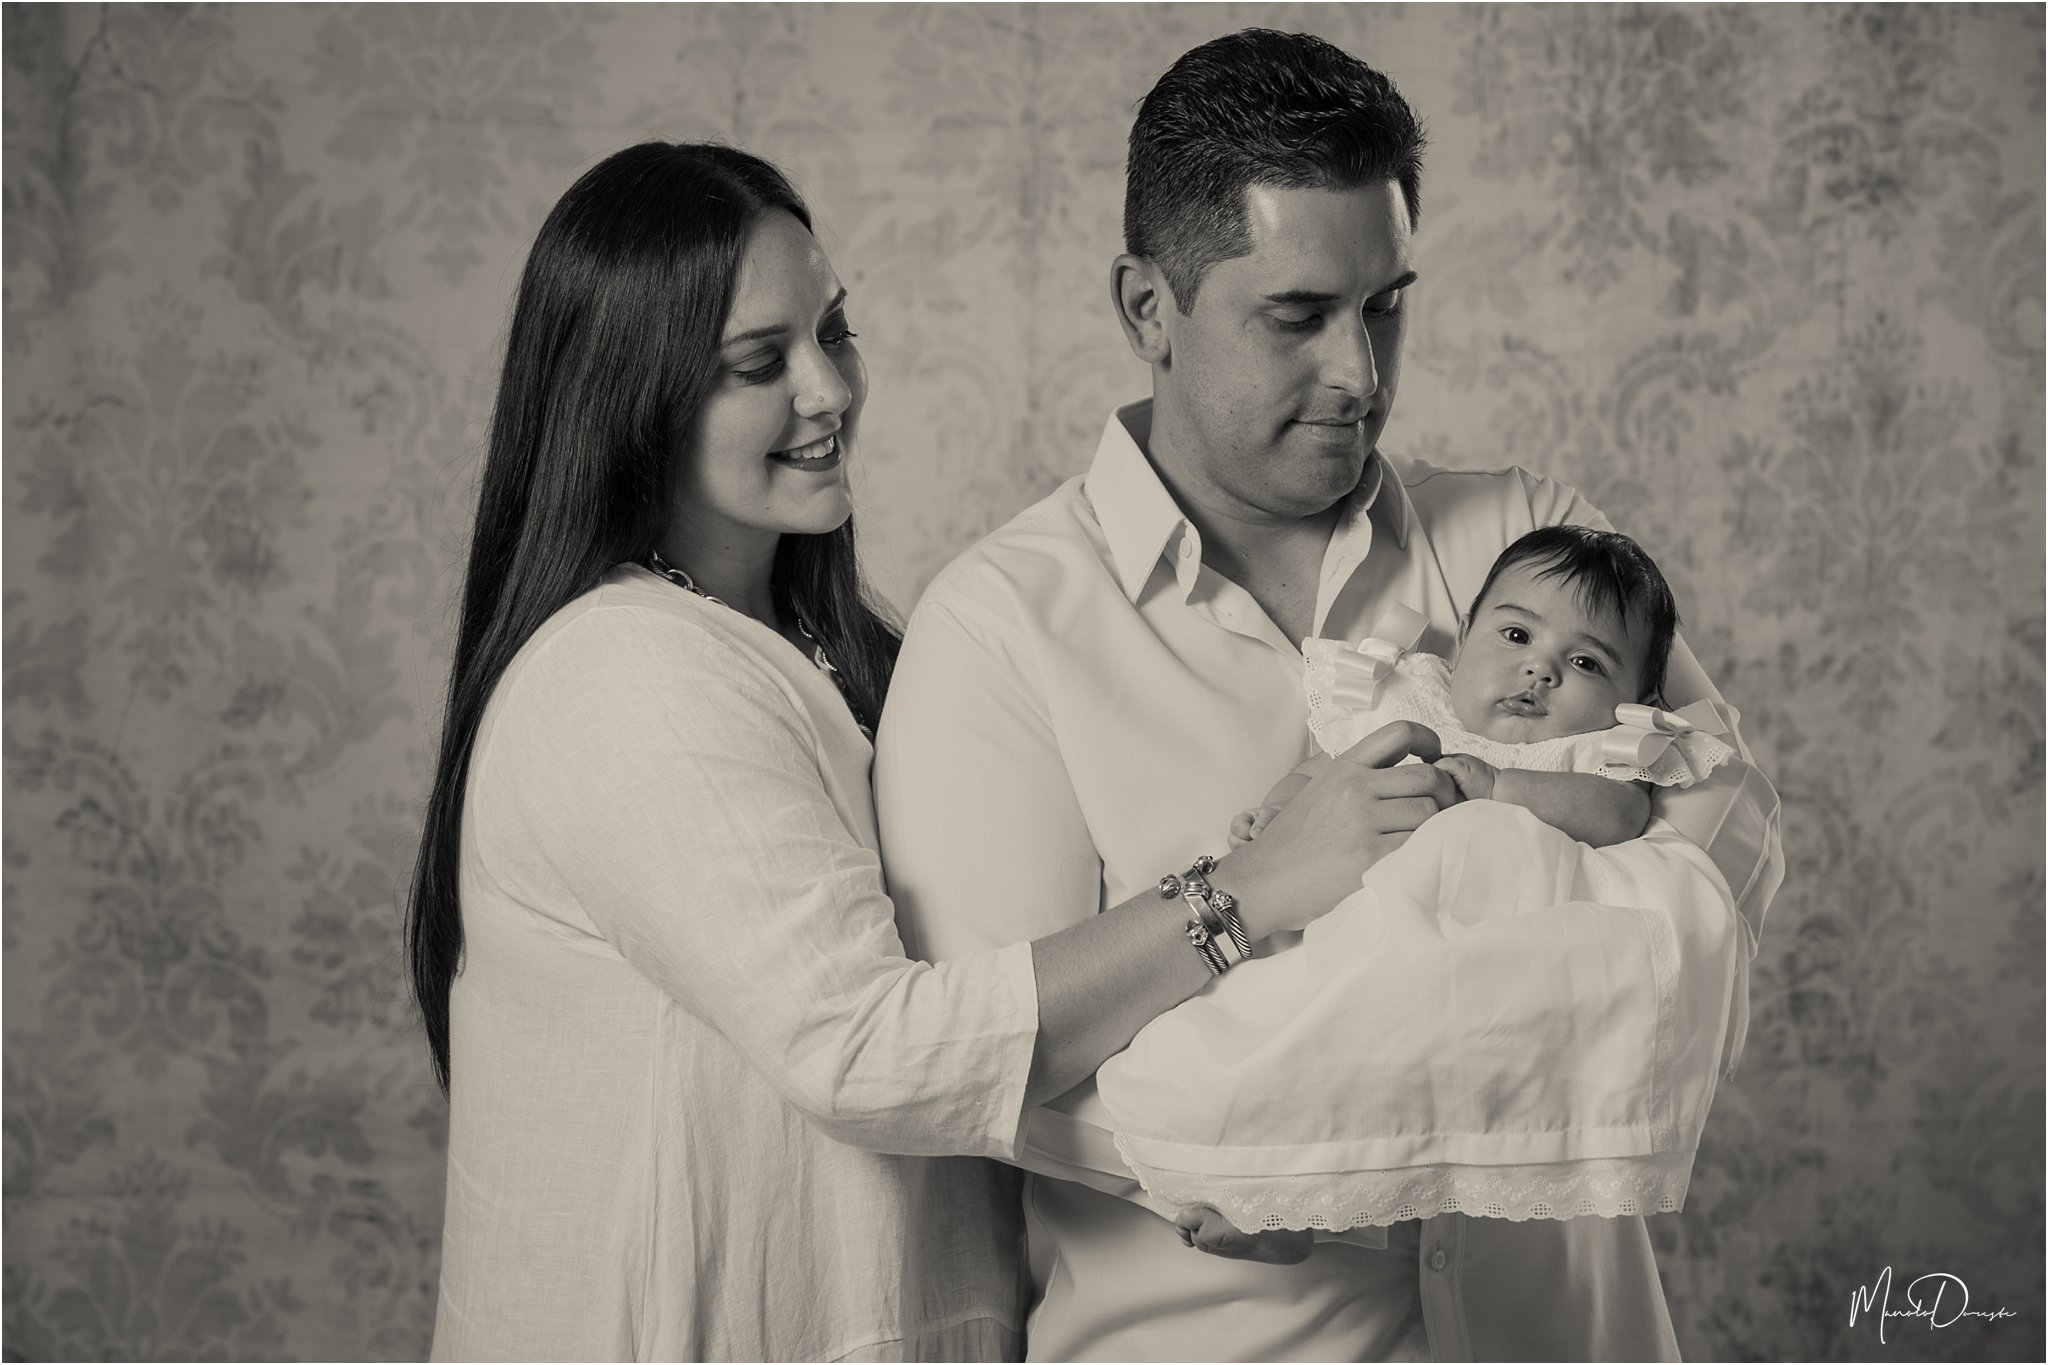 0213_ManoloDoreste_InFocusStudios_Wedding_Family_Photography_Miami_MiamiPhotographer.jpg